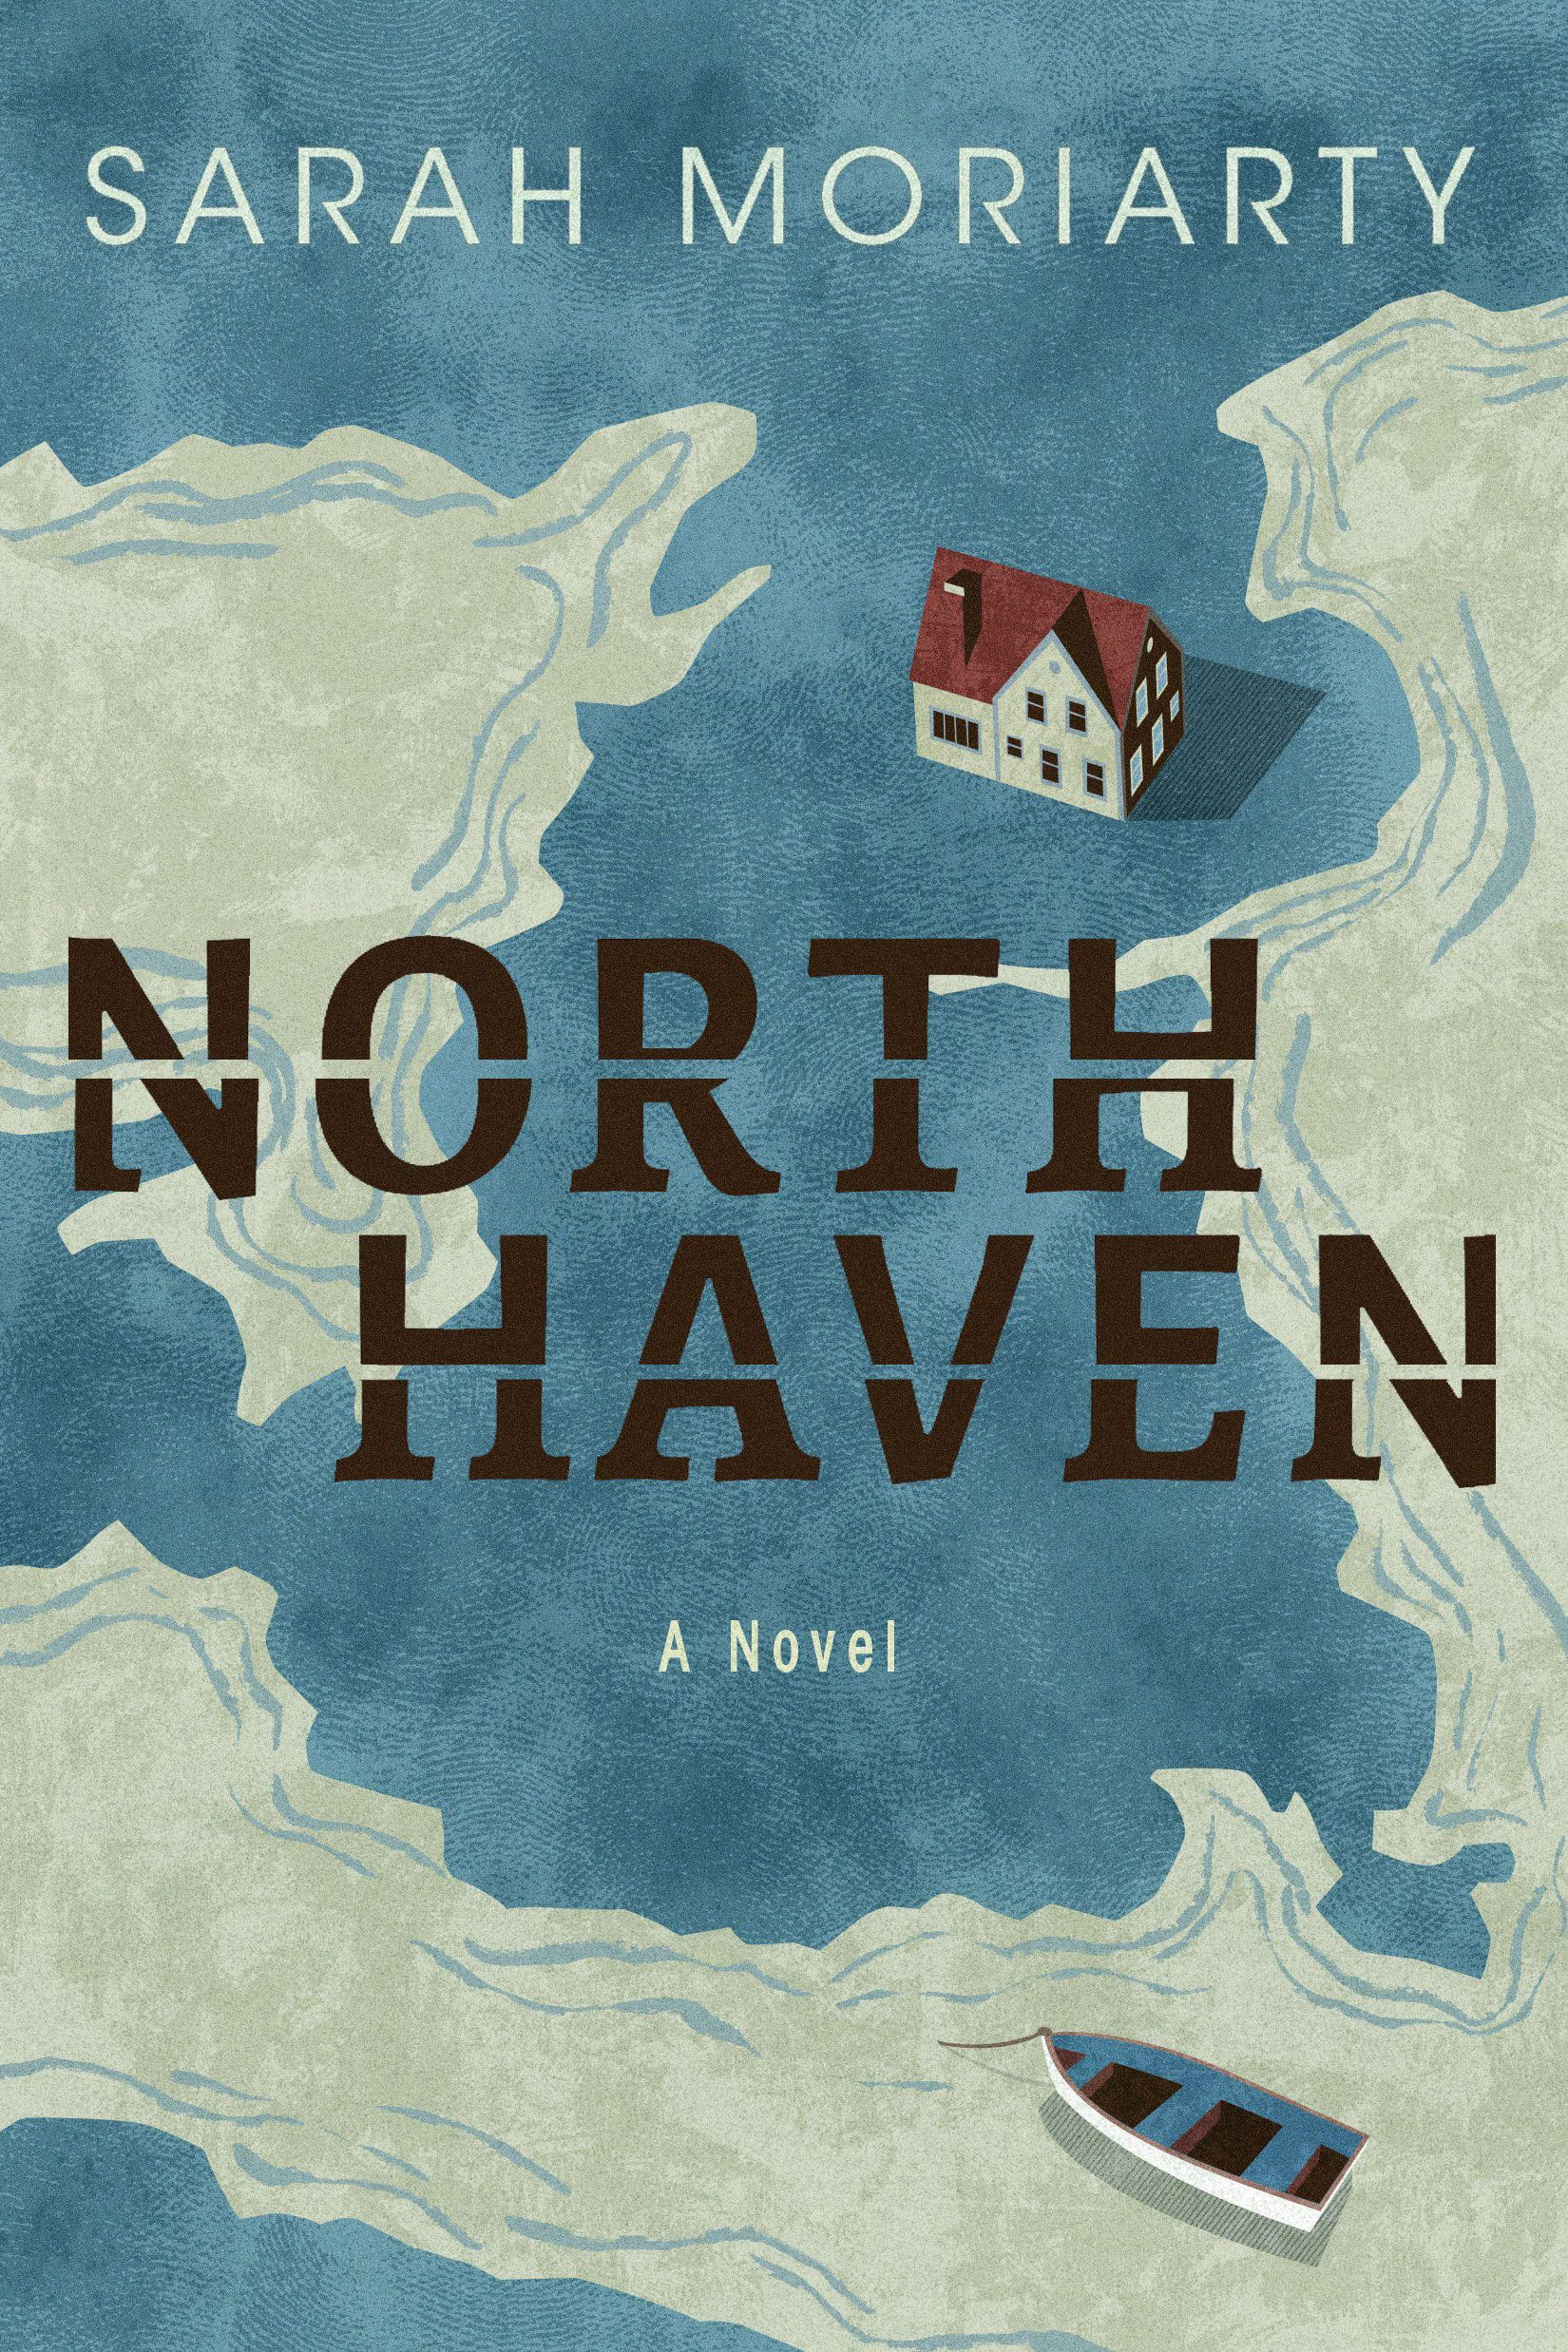 """<p>Four siblings arrive at their summer retreat in coastal Maine…but instead of sunshine, beach time and barbecues, they are forced to confront long-hidden secrets that could tear them apart. An explosive portrait on the complexities of family bonds and the dark layers of drama that come with them, North Haven is one of 2017's richest summer reading experiences.<span>It'll makeyour own family drama quite mild in comparison.</span></p><p><span><strong data-verified=""""redactor"""" data-redactor-tag=""""strong""""><a href=""""https://www.amazon.com/North-Haven-Sarah-Moriarty/dp/1503941523/?tag=redbook_auto-append-20"""" target=""""_blank"""" class=""""slide-buy--button"""" data-tracking-id=""""recirc-text-link"""">BUY NOW</a></strong><br></span></p>"""